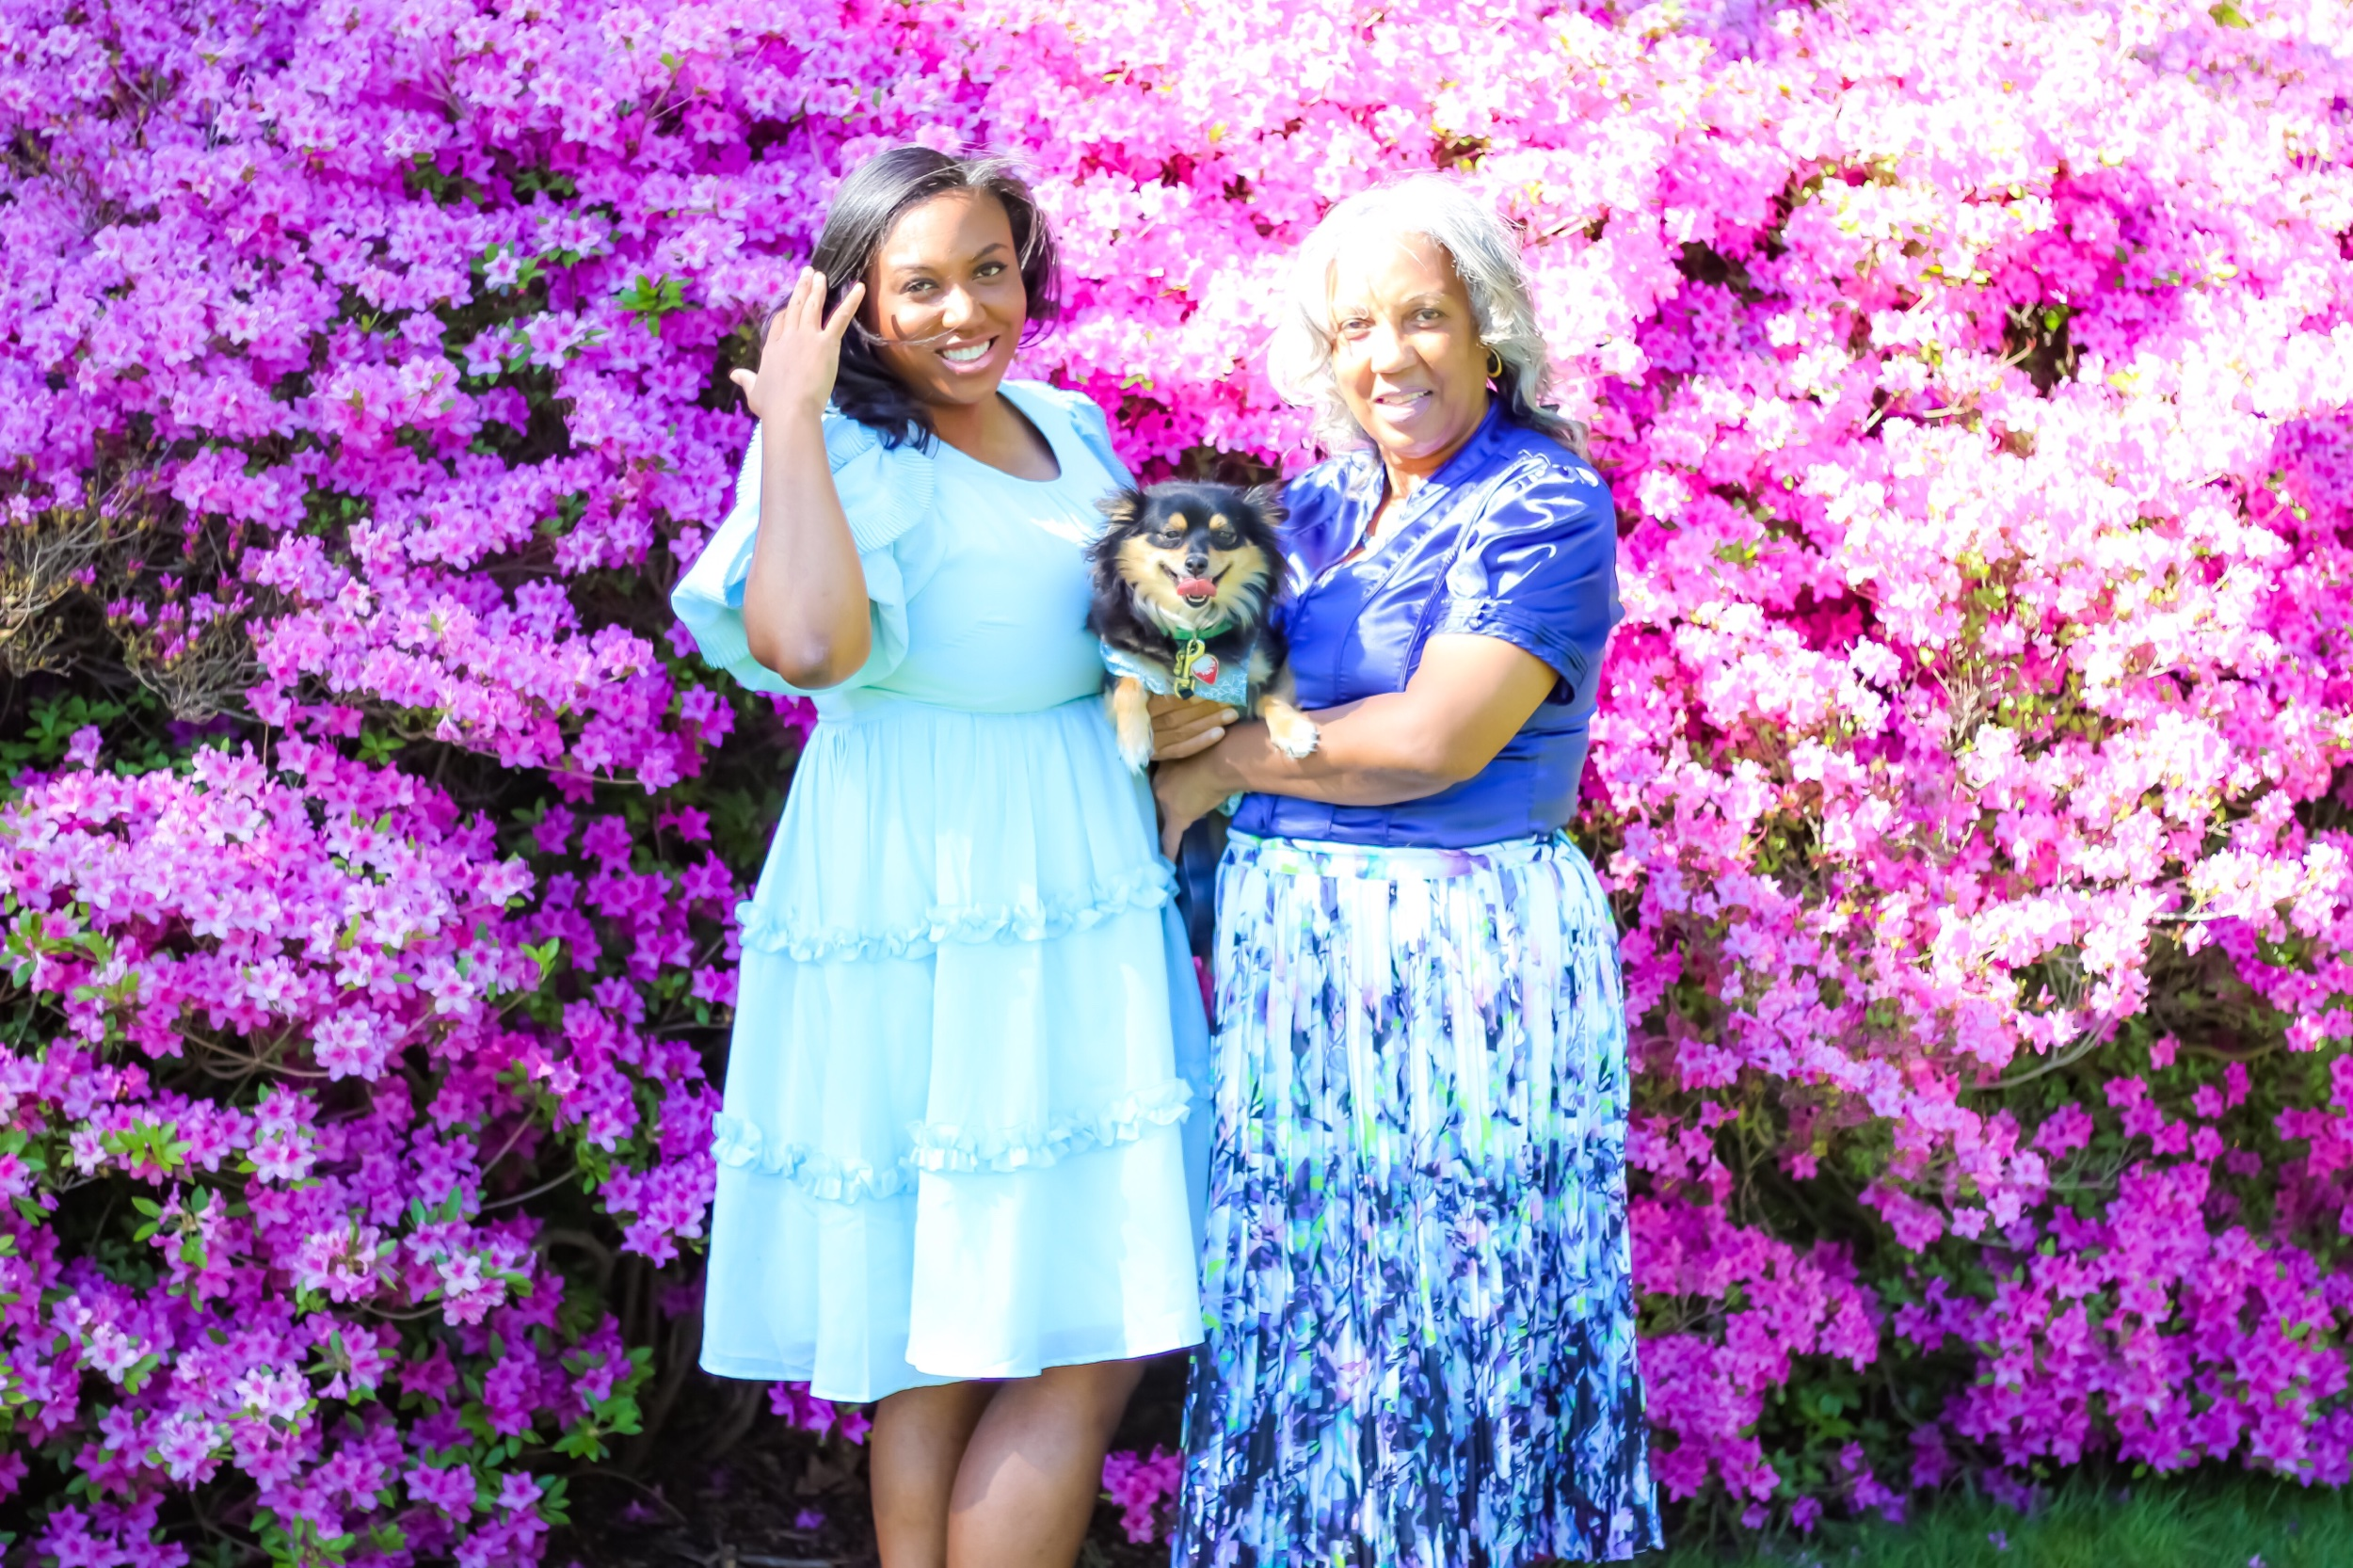 Feminine Ruffles and Jewel Tones - Mother's Day at Sherwood Gardens